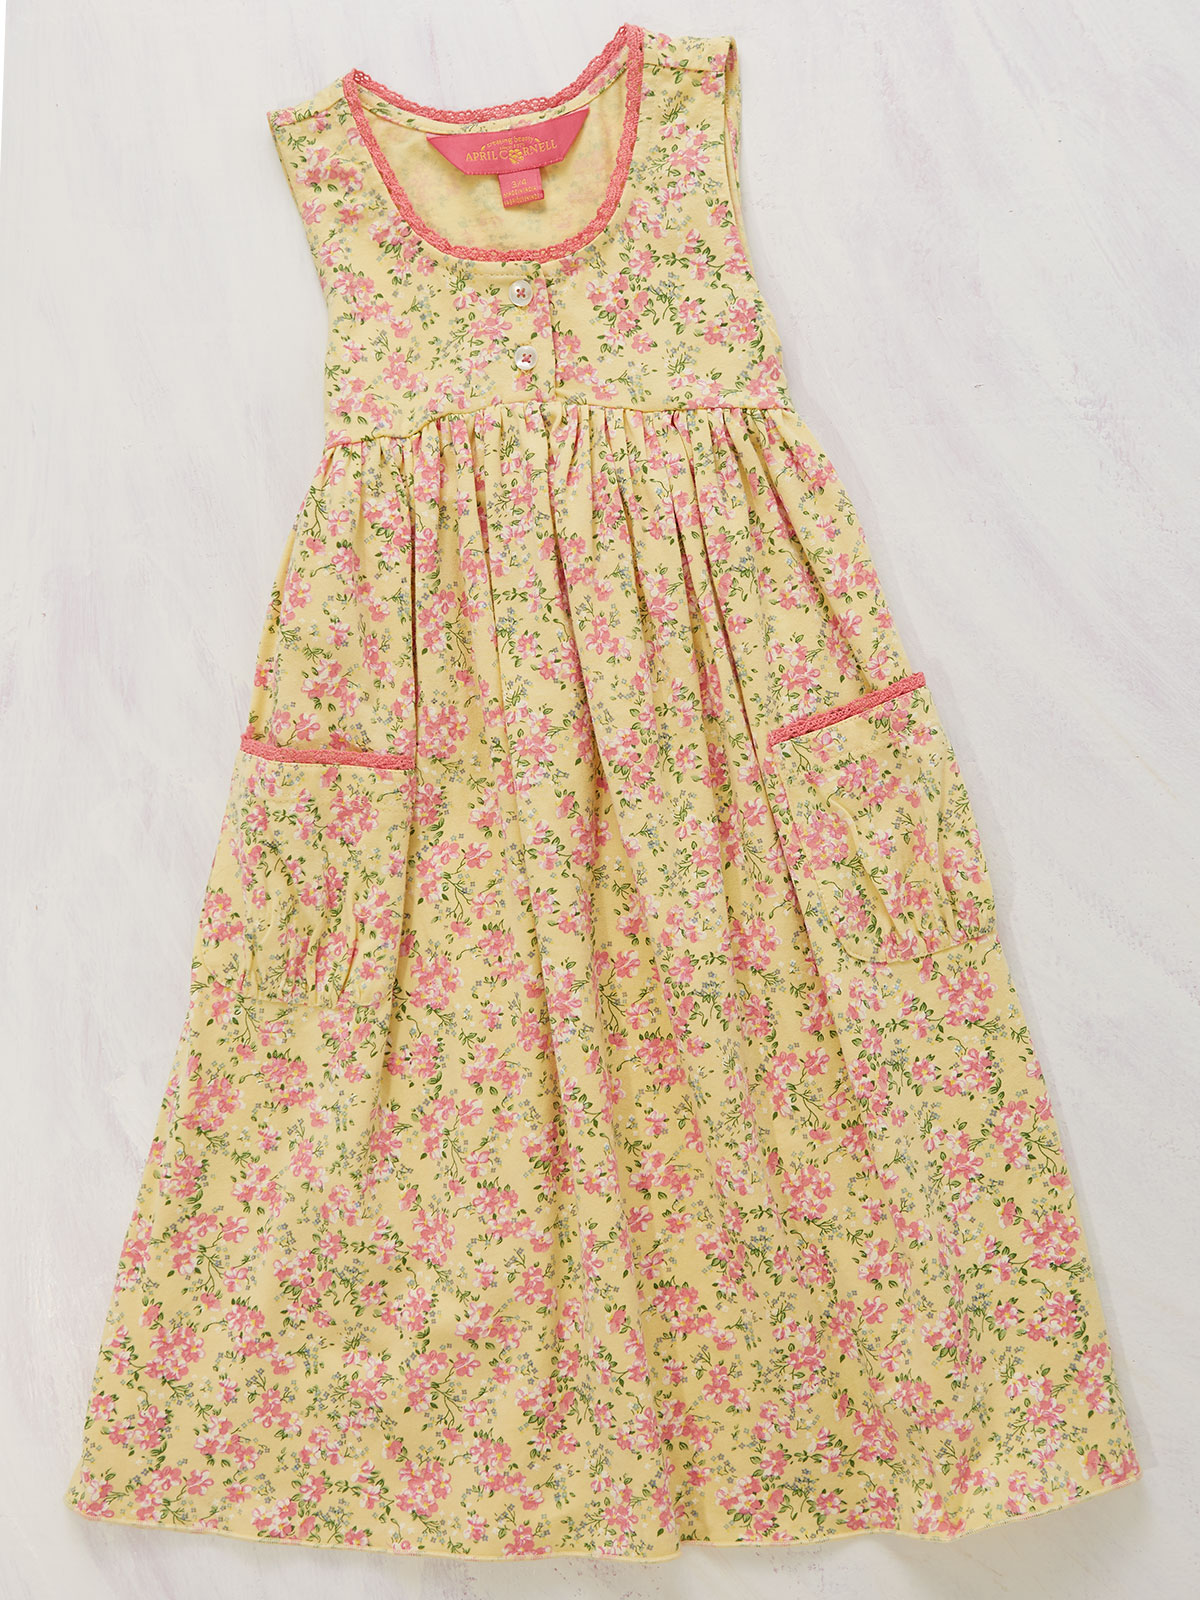 Friends Girls Dress